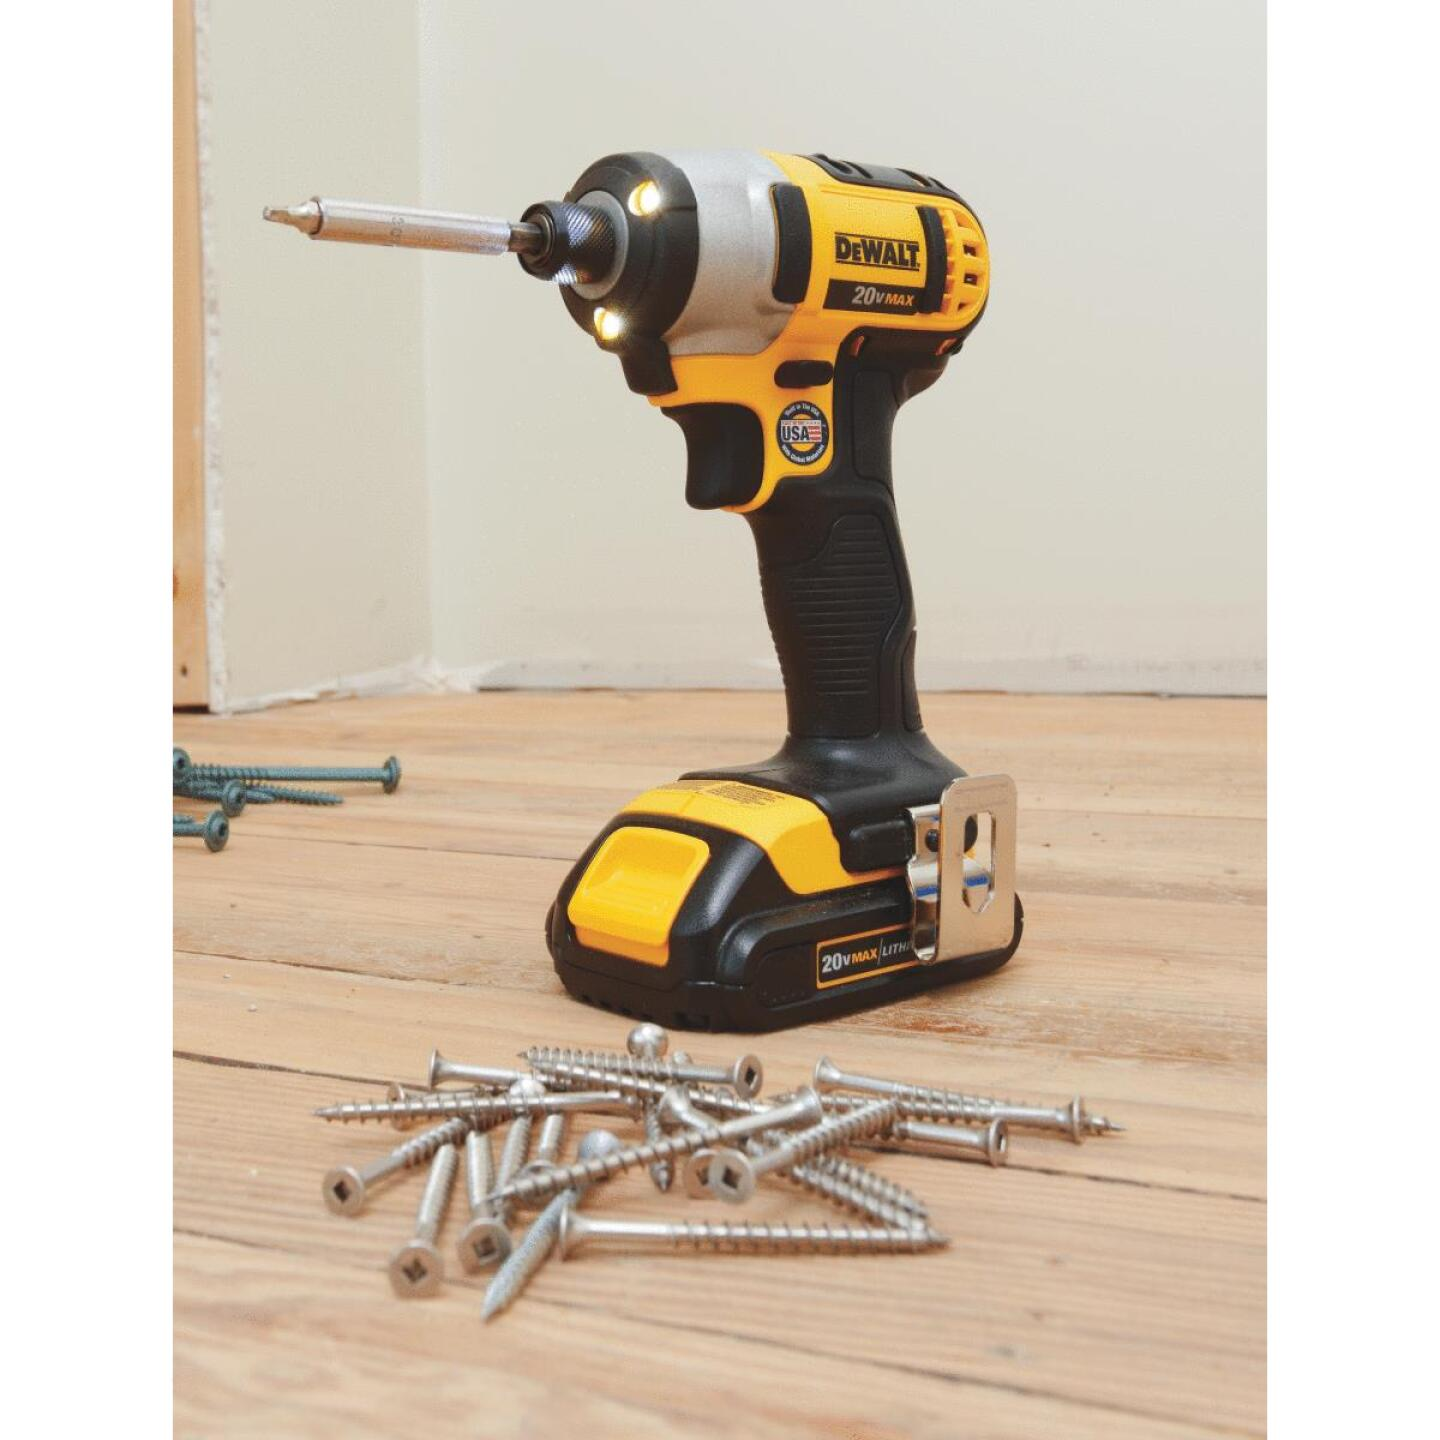 DeWalt 20 Volt MAX Lithium-Ion 1/4 In. Hex Cordless Impact Driver Kit (2-Battery) Image 3